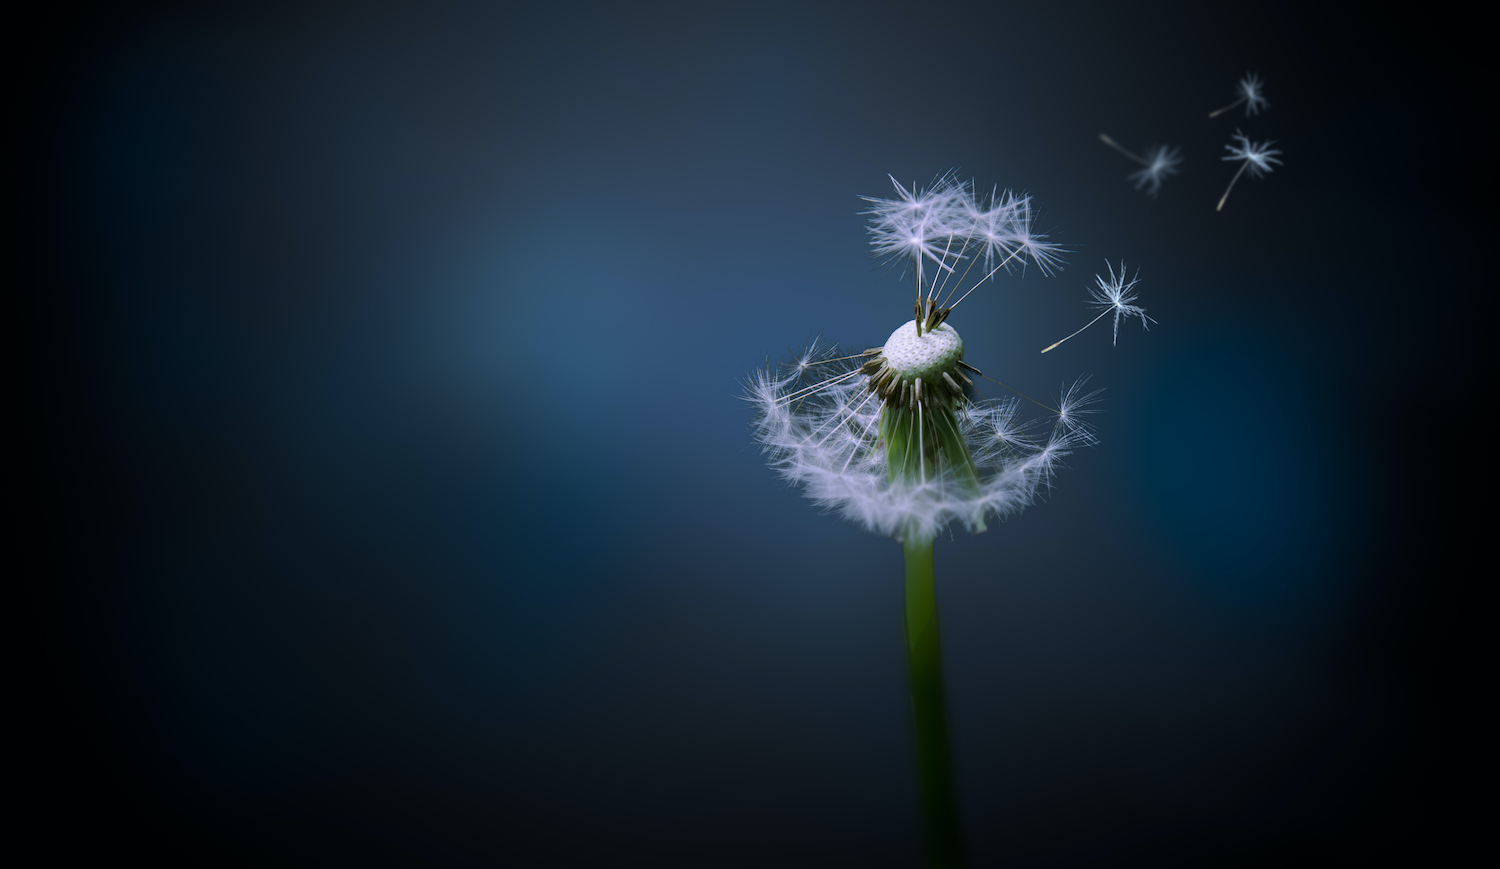 A picture of a Dandelion in the wind, with a background of cool blue colours, blurred from the narrow pane of focus. Composition made in photoshop. (A picture of a Dandelion in the wind, with a background of cool blue colours, blurred from the narrow